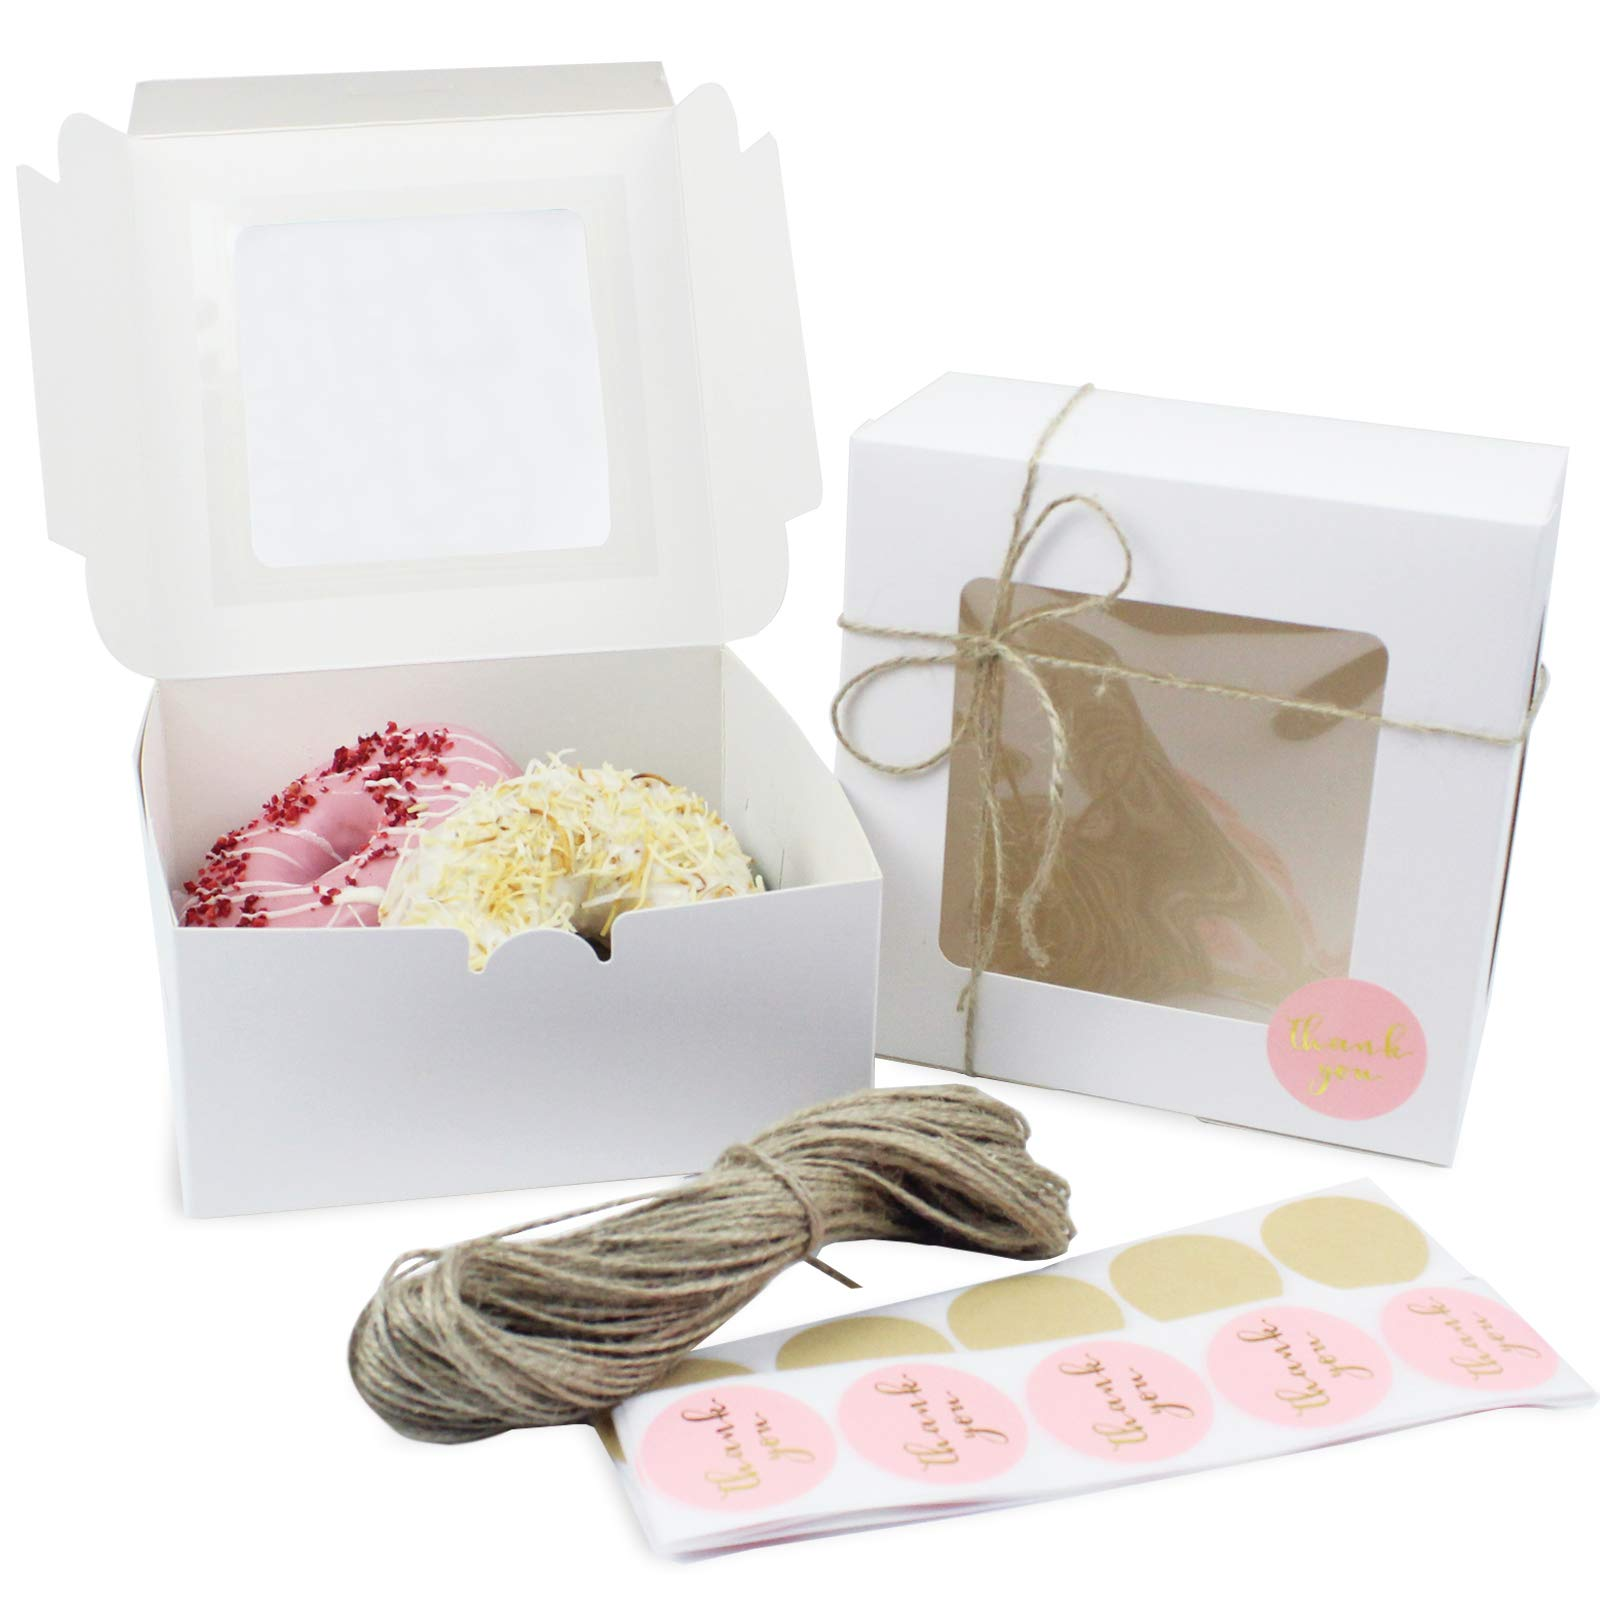 White Bakery Boxes with Window (25 Pack, 6.3x6.3x3 in), Eco-Friendly Paperboard Treat Boxes with 30M Jute Twine and 50pcs Stickers, Extra Thick Pastry Boxes for Muffins, Donuts, Cookies, Pie, Cupcakes